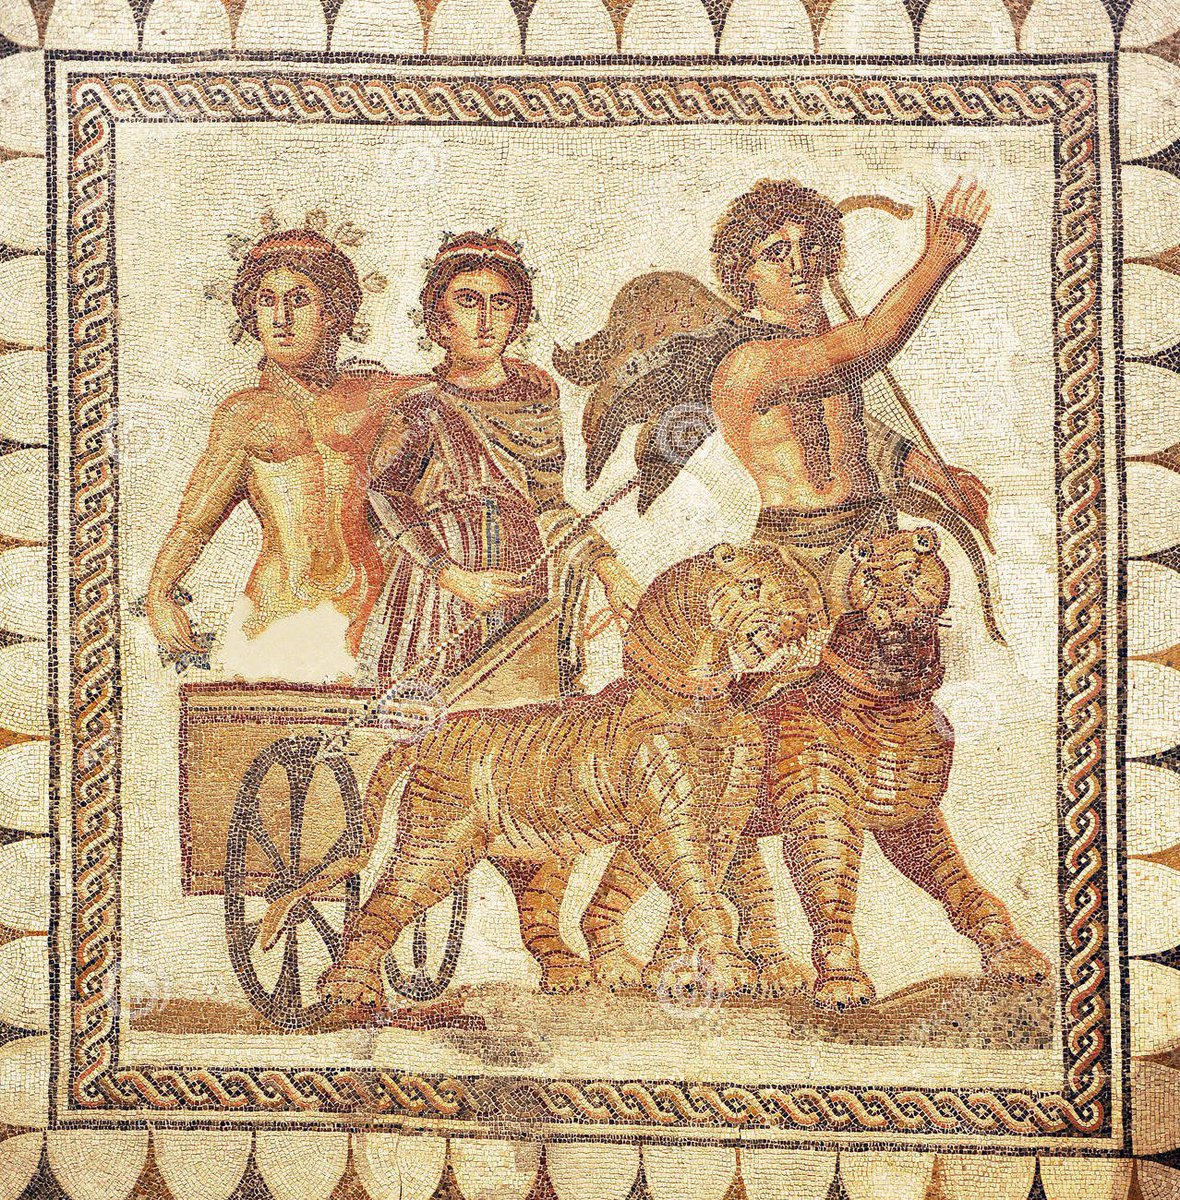 essays on ancient greek religion Ancient greek worship research papers examine the religious worship habits in ancient greece and in greek mythology research paper on ancient greek worship are custom written at paper masters and cover many aspects of worship in ancient greece.